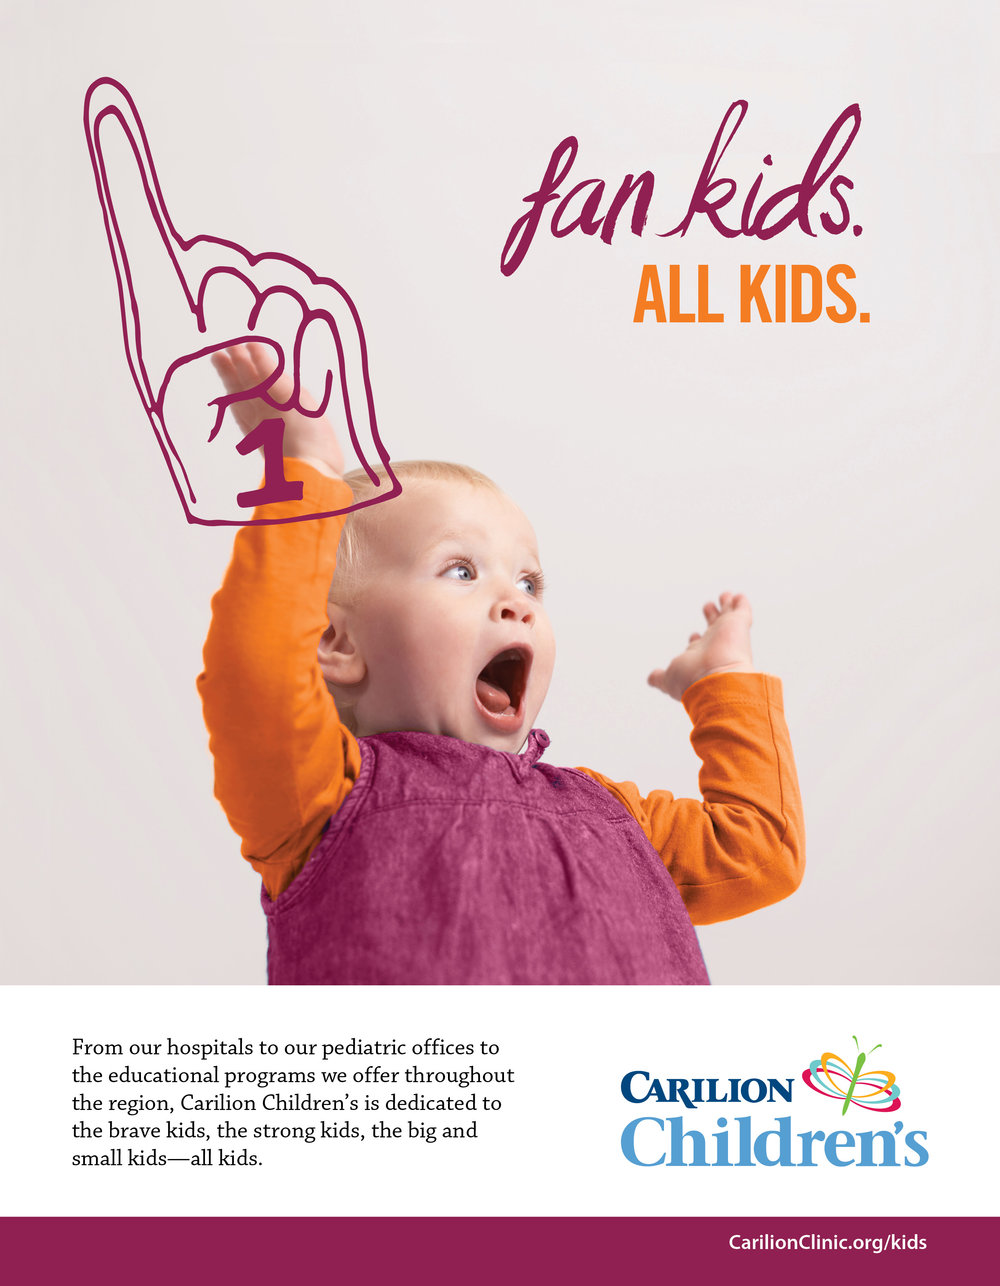 C66749 Carilion Childrens VT Football Bowl Game Ad_FoamFinger_8 5x11 w bleed.jpg